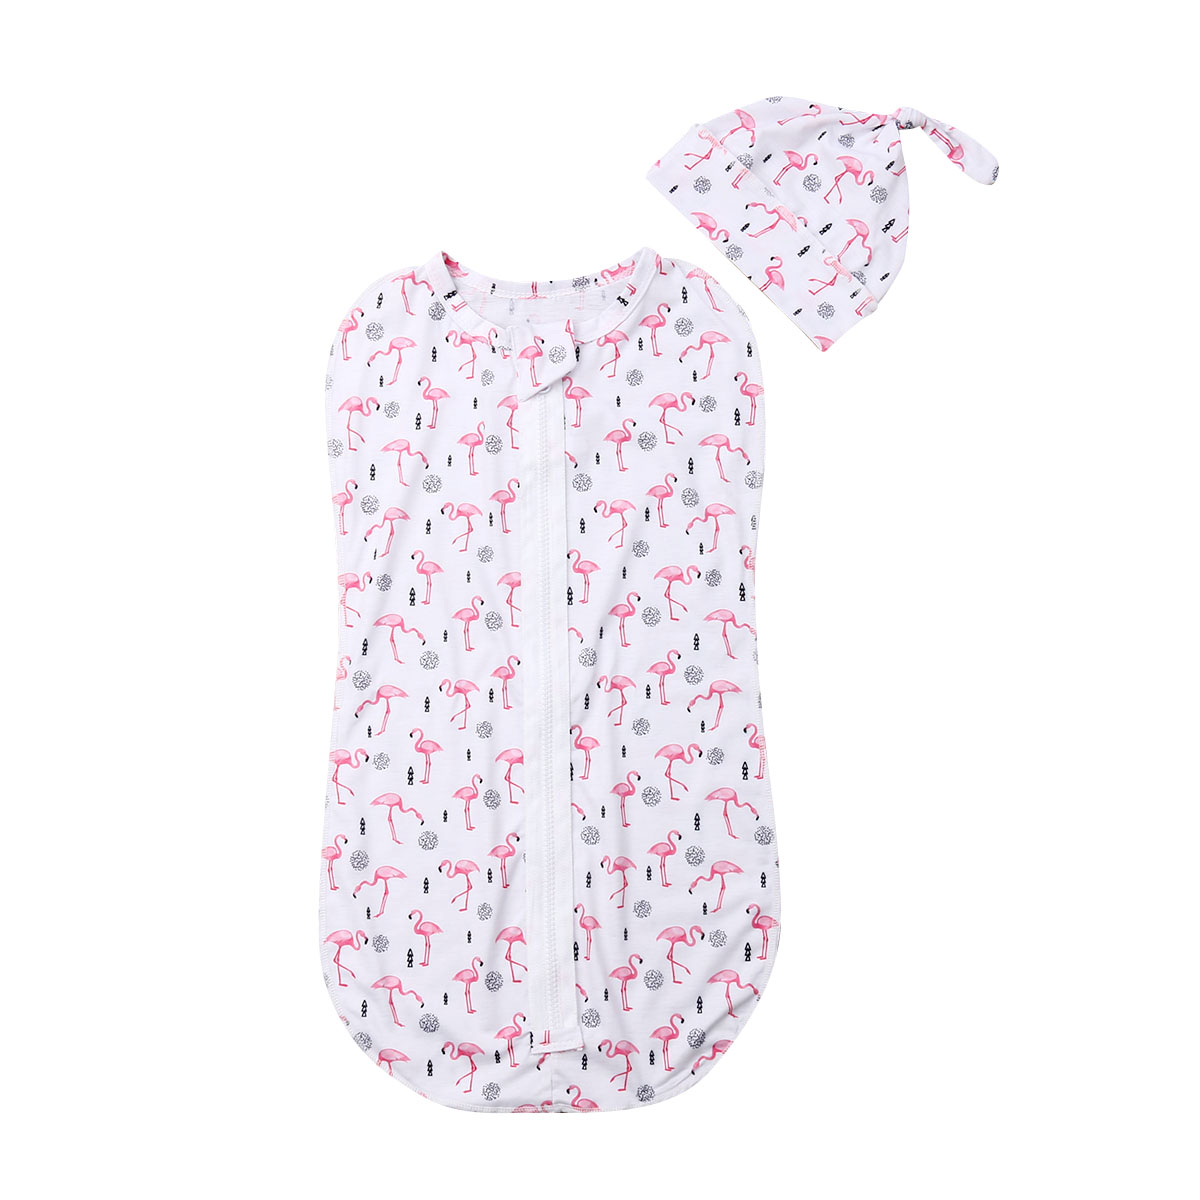 Infant Baby Boy Girl Swaddle,Child Pajamas Sleep Sack for 0-36Months Cotton Warm Baby Sleeping Bag for Winter